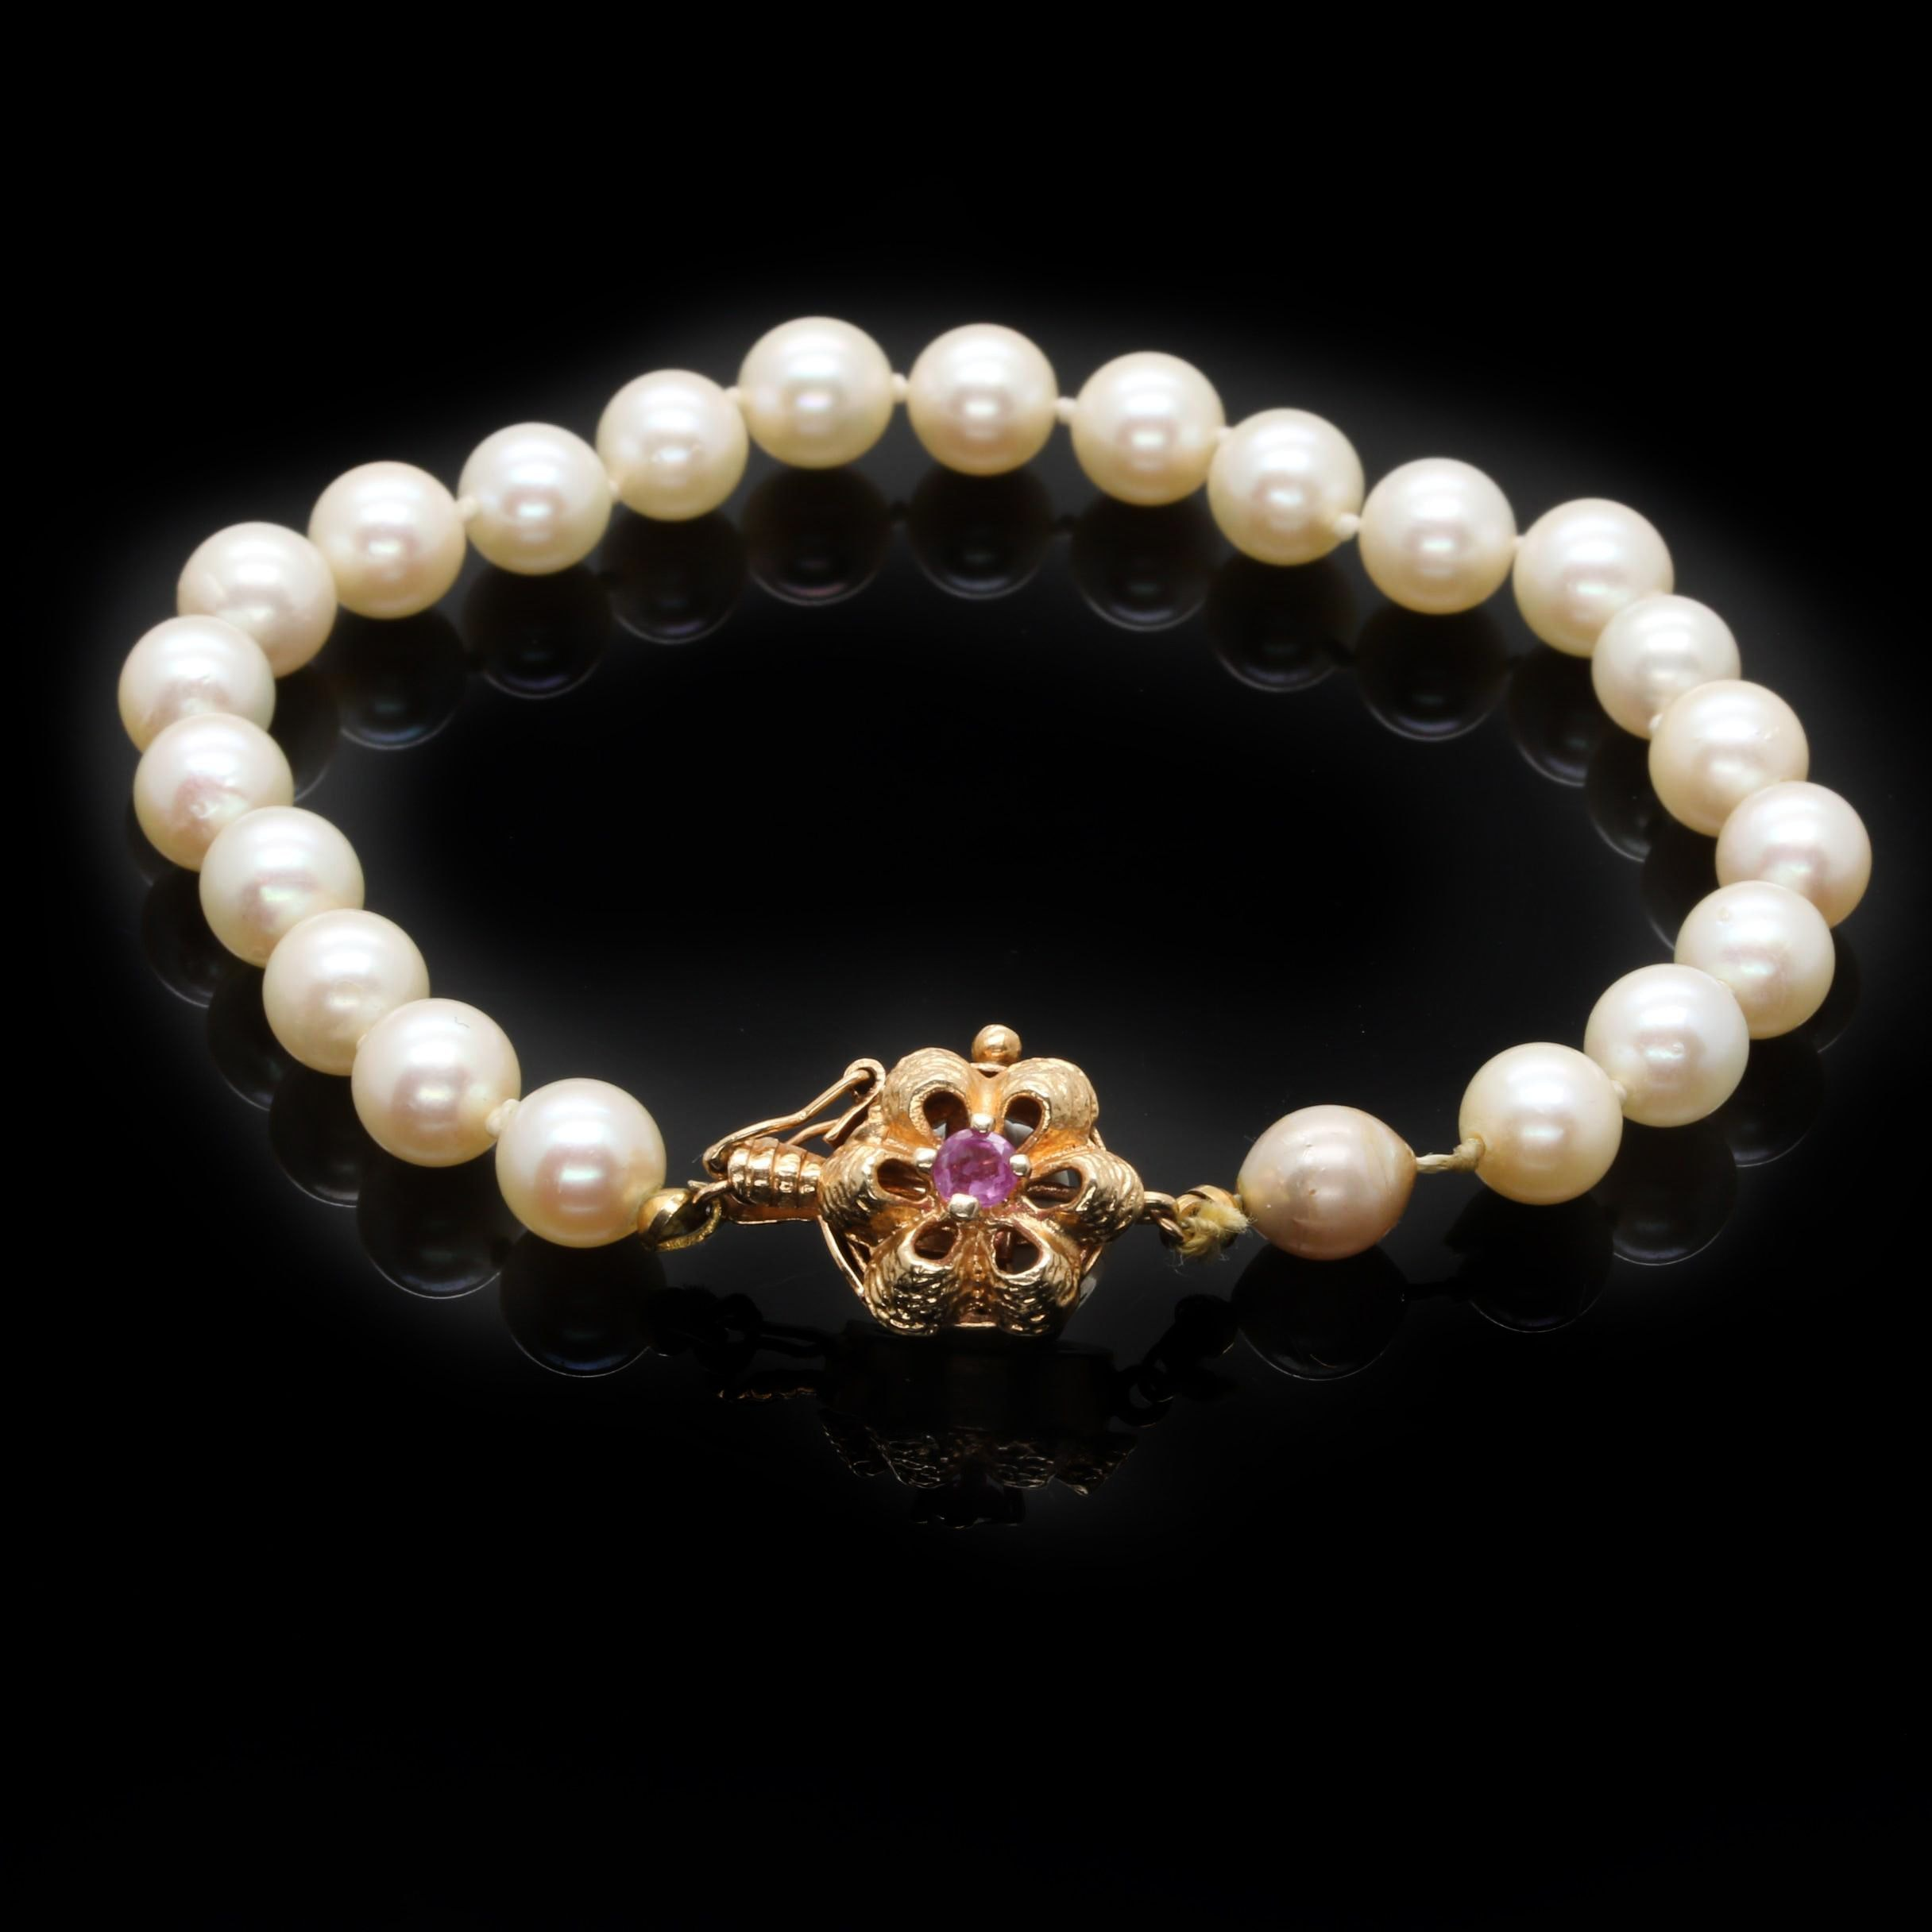 14K Yellow Gold Cultured Pearl Bracelet With Ruby Accent